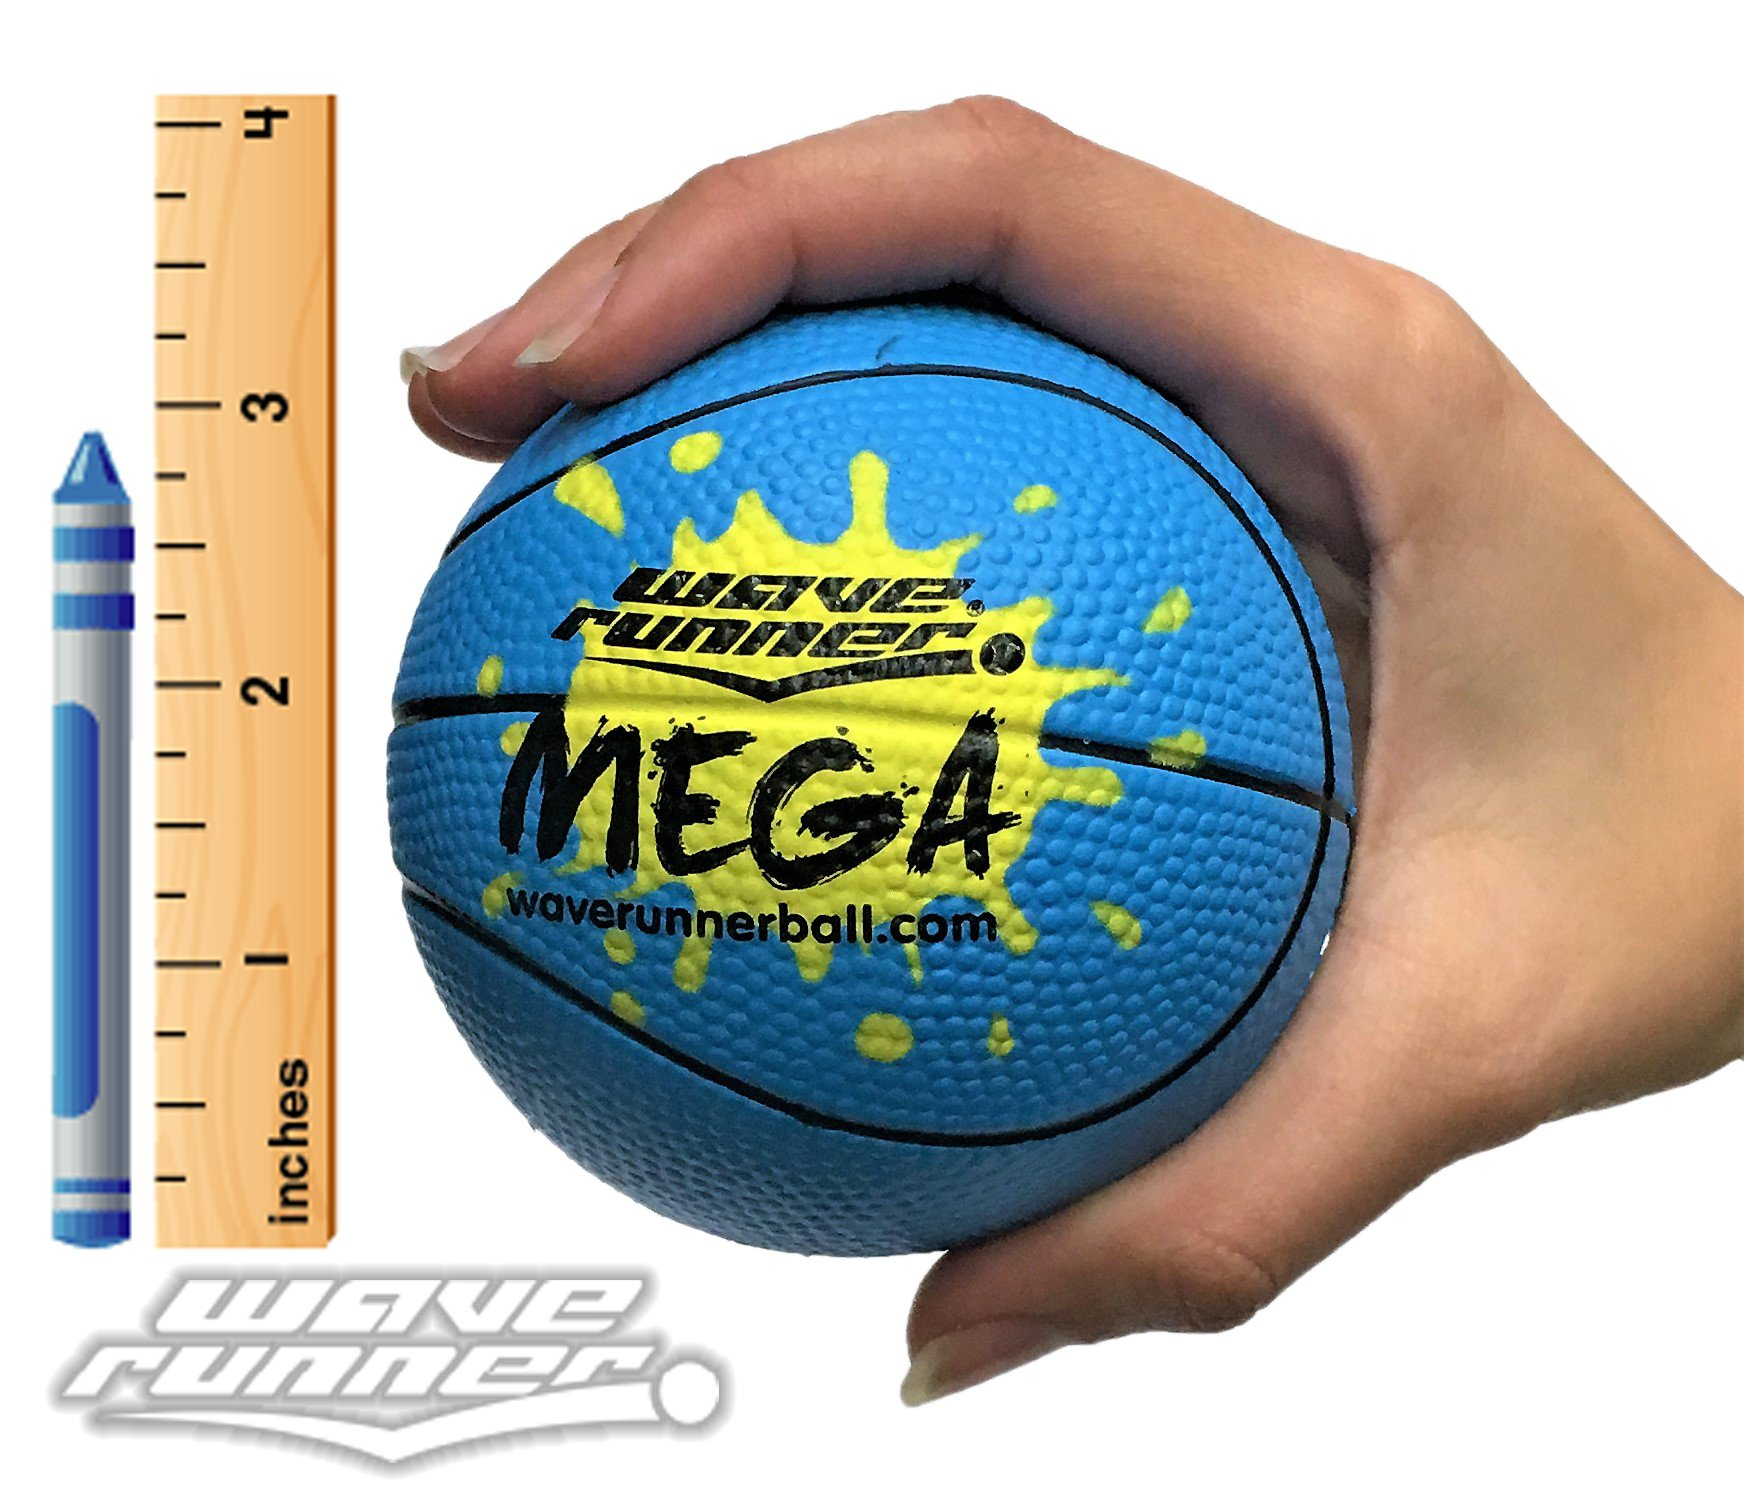 Wave Runner Mega Sports Miniature Basketball 3.5'' Waterproof Bouncing Ball for all Ages Colors May Vary